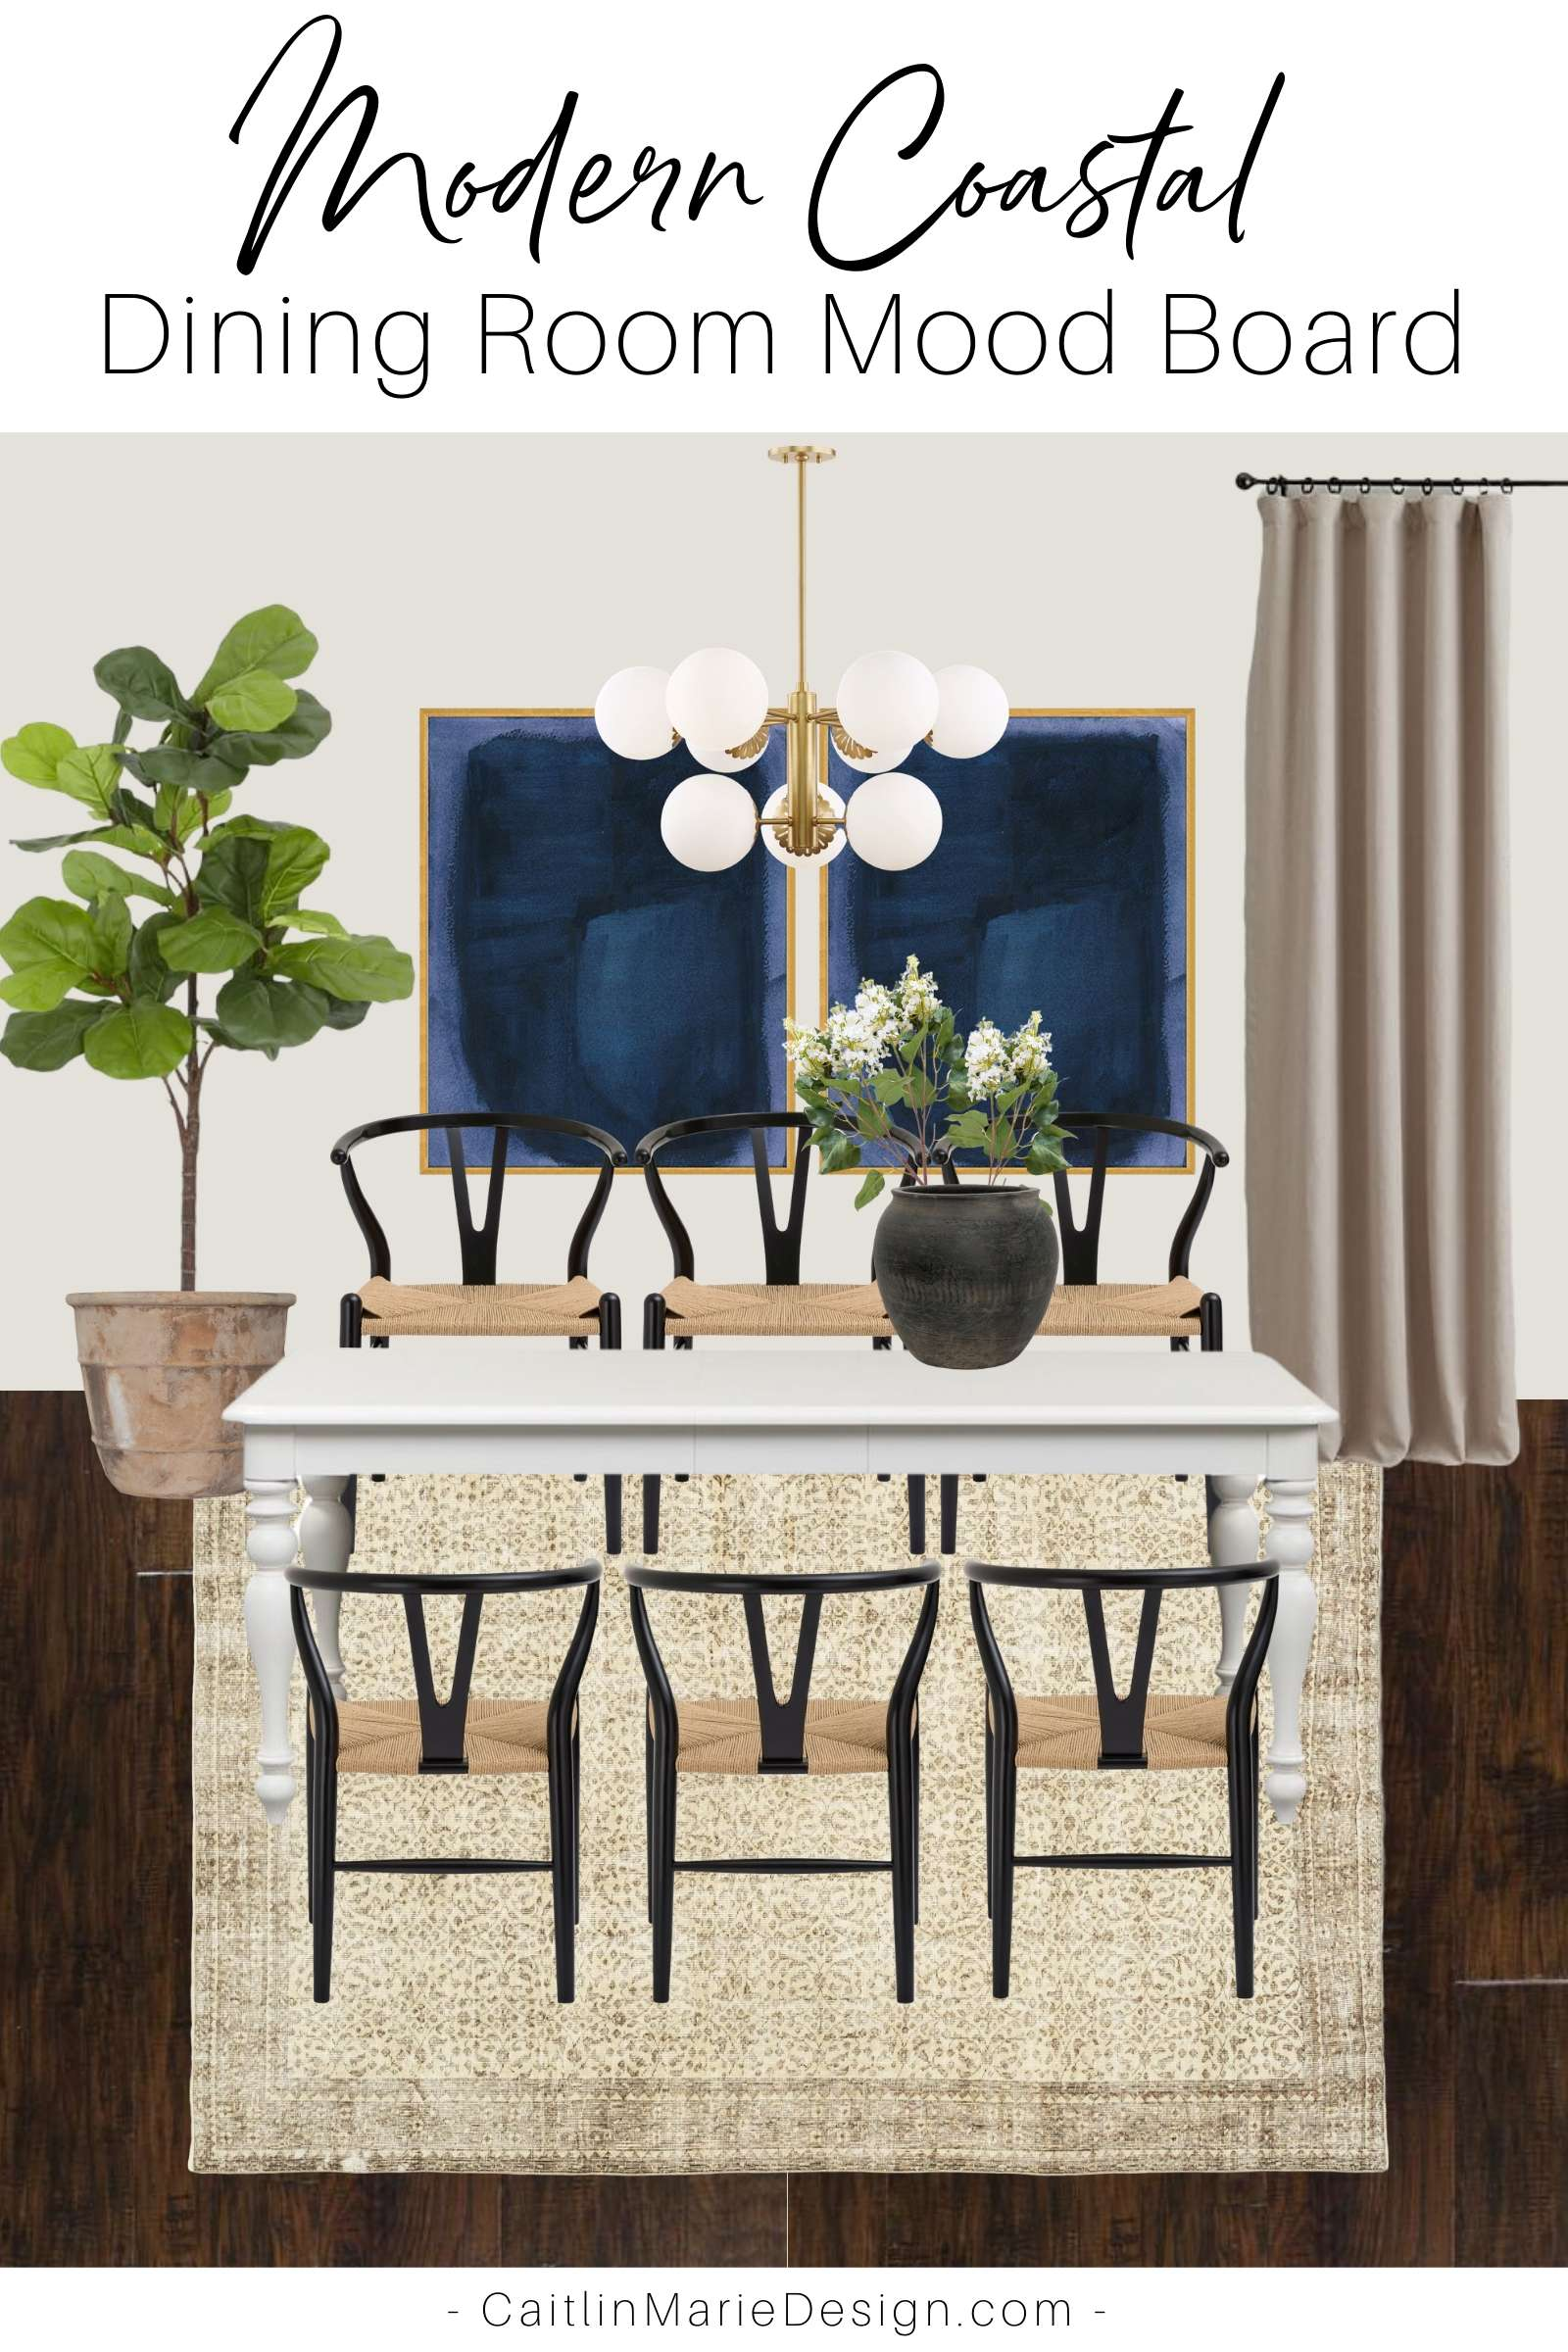 Modern Coastal Dining Room Mood Board | One Room Challenge Spring 2020, coastal home decor, modern chandelier, wishbone chairs, vintage rug, white farmhouse table